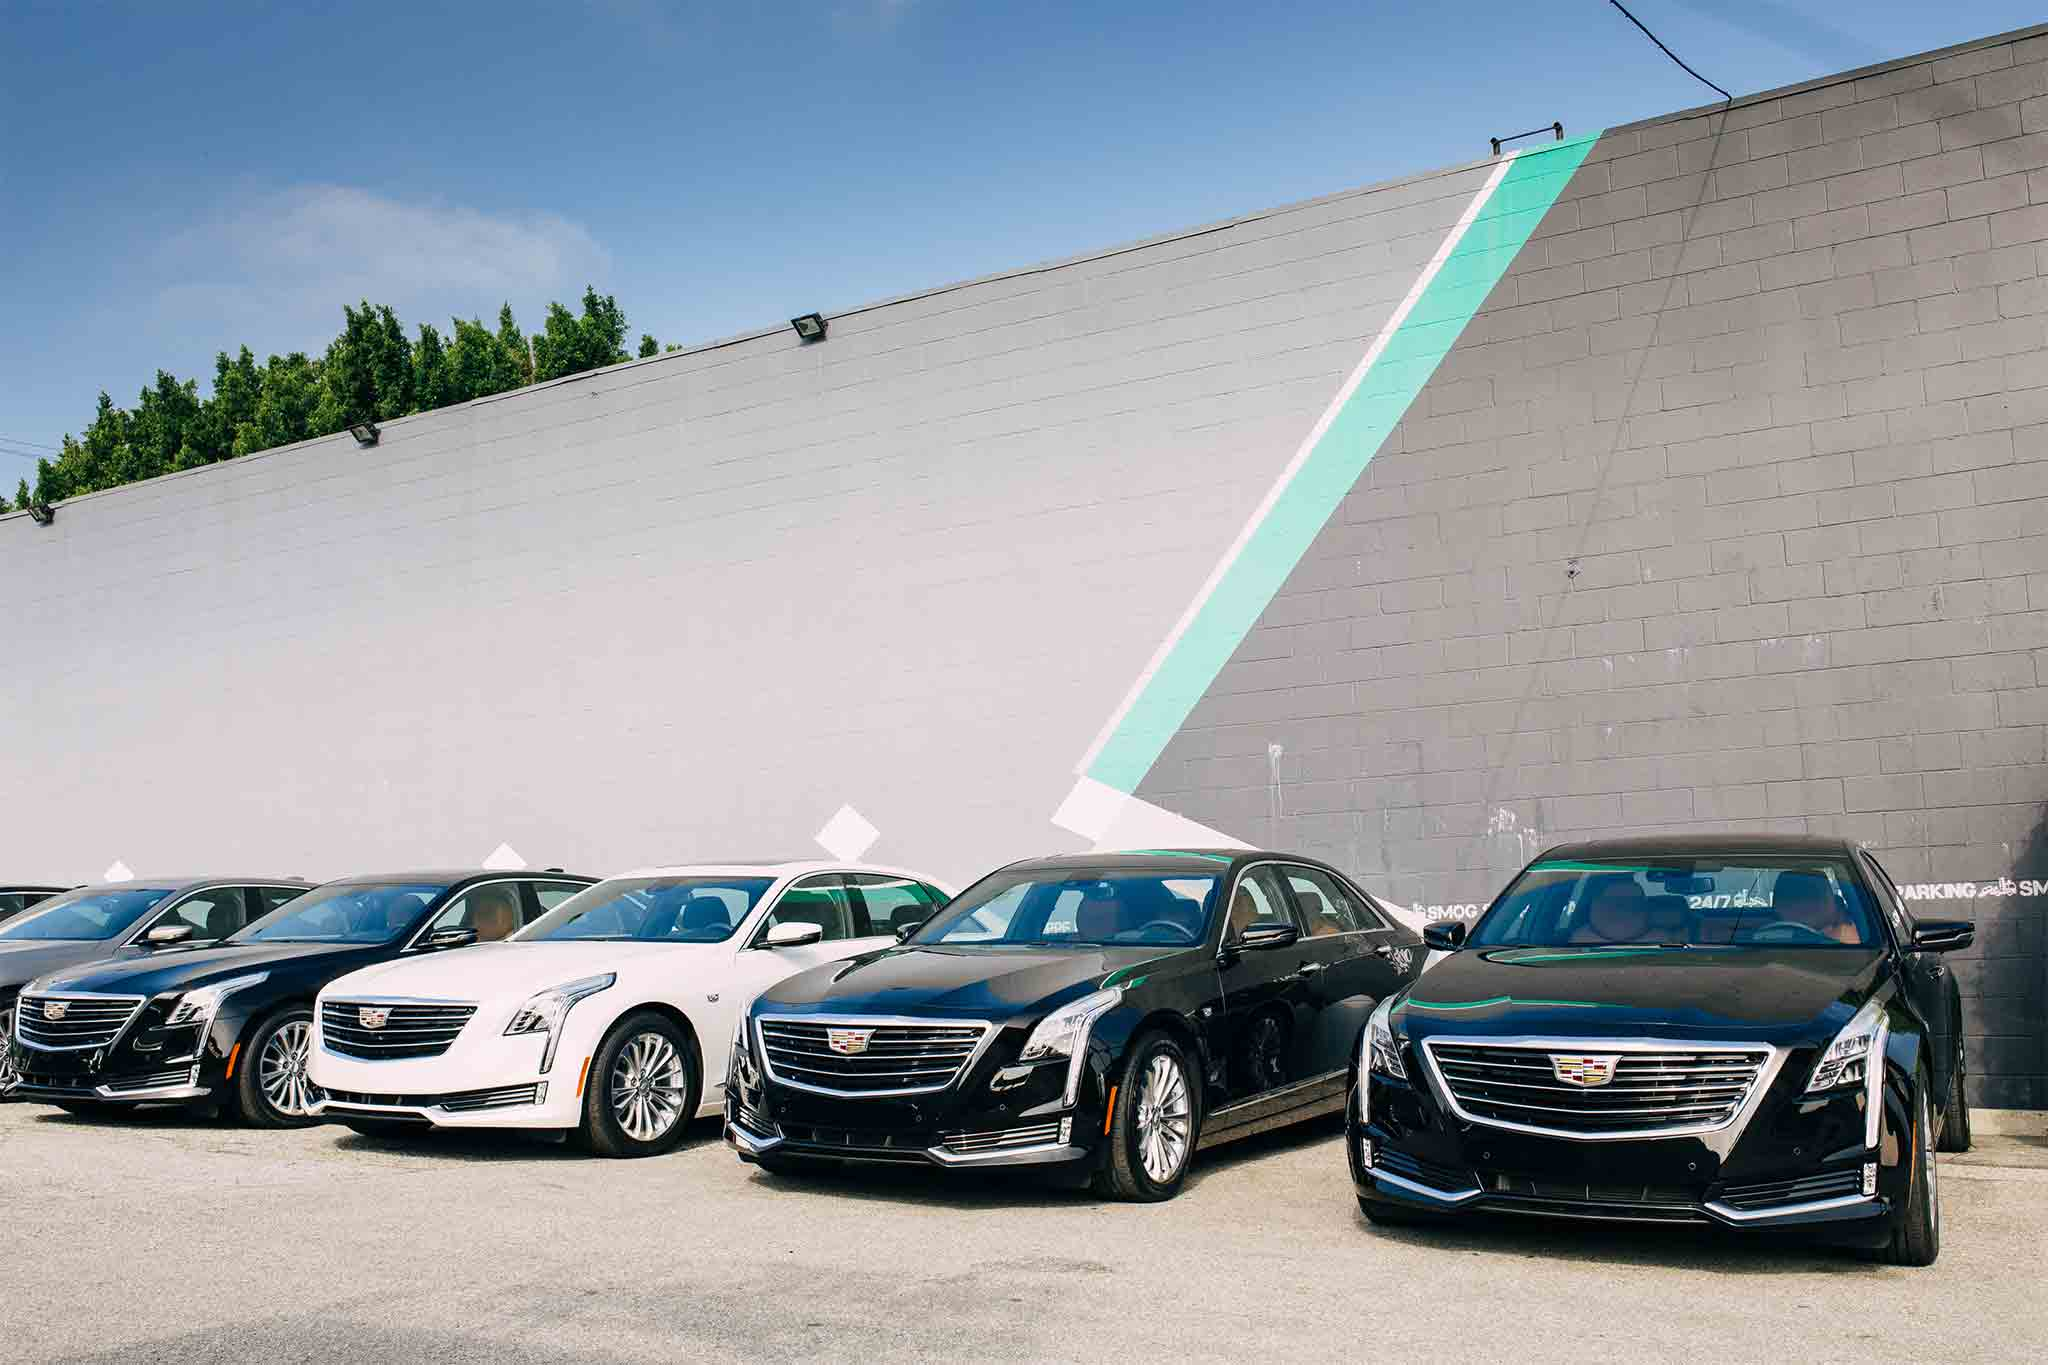 new cars s there files com to cheer hybrid w plug wordpress little cadillac url review theres in hero tym q unplugged